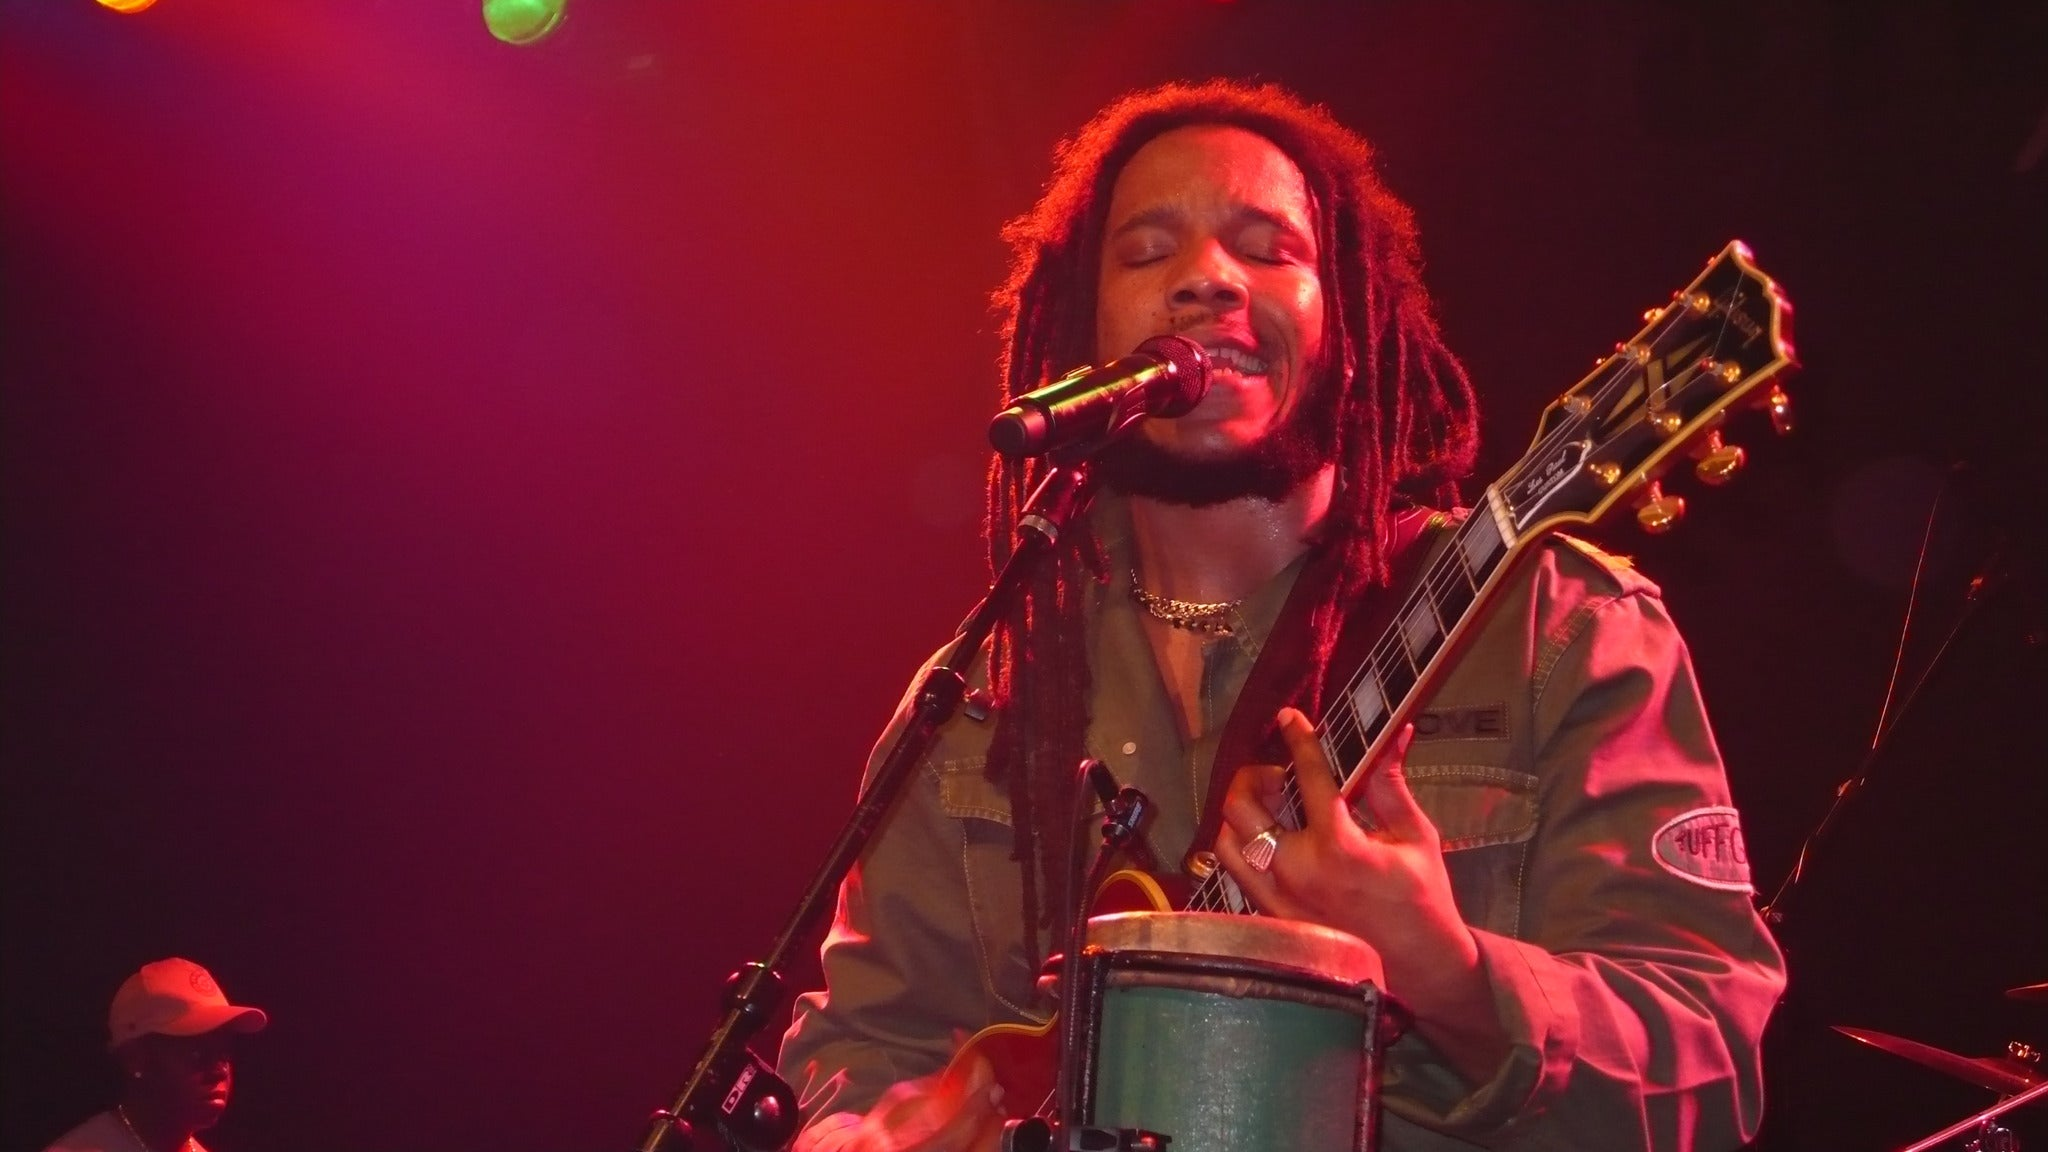 Stephen Marley at Howard Theatre - Washington, DC 20001